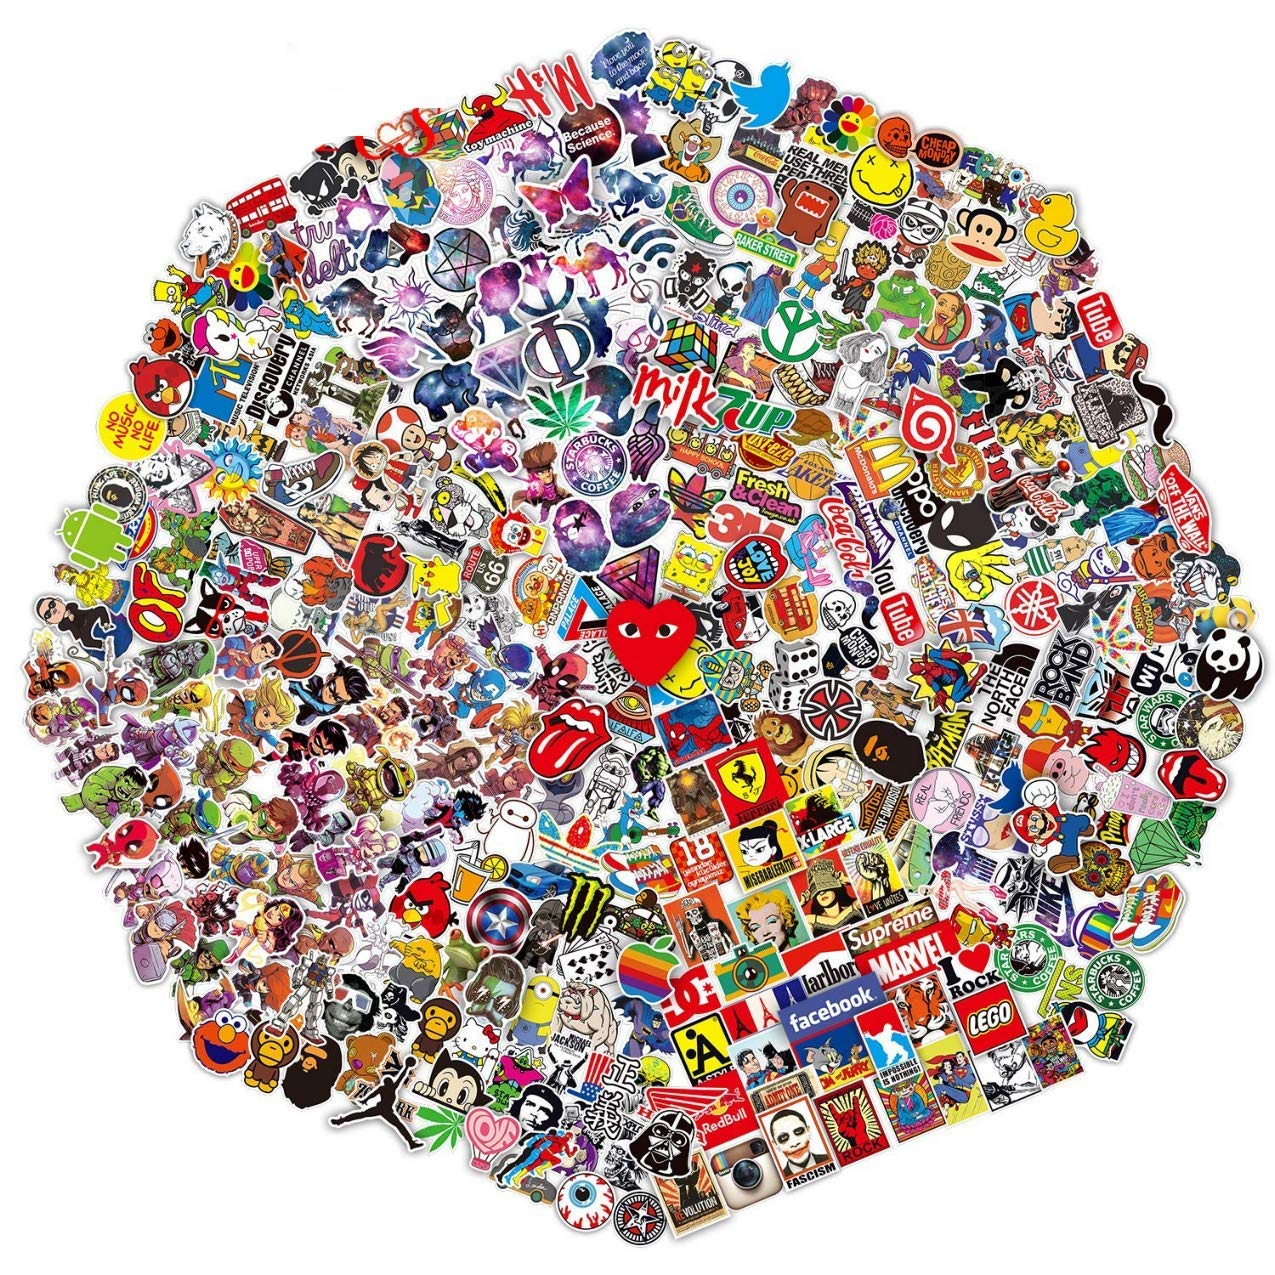 700Pcs Random Sticker(50~1100 Pcs),Fast Shipped by Amazon. Vinyls Decals for Laptop,Cars,Motorcycle,Bicycle,Skateboard,Luggage.